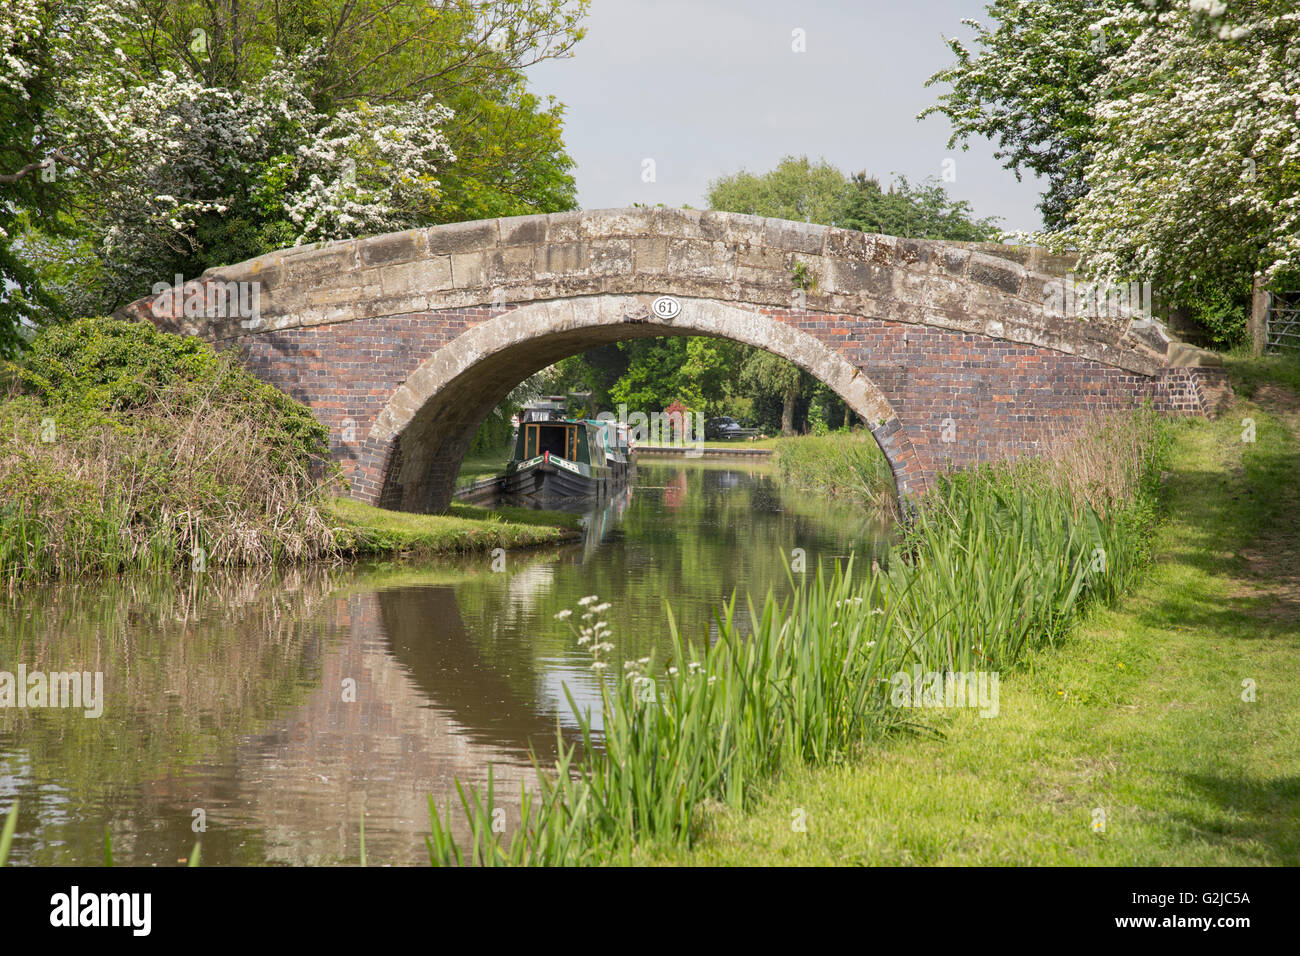 Picturesque canal bridge on the Ashby canal, Leicestershire, England, UK - Stock Image